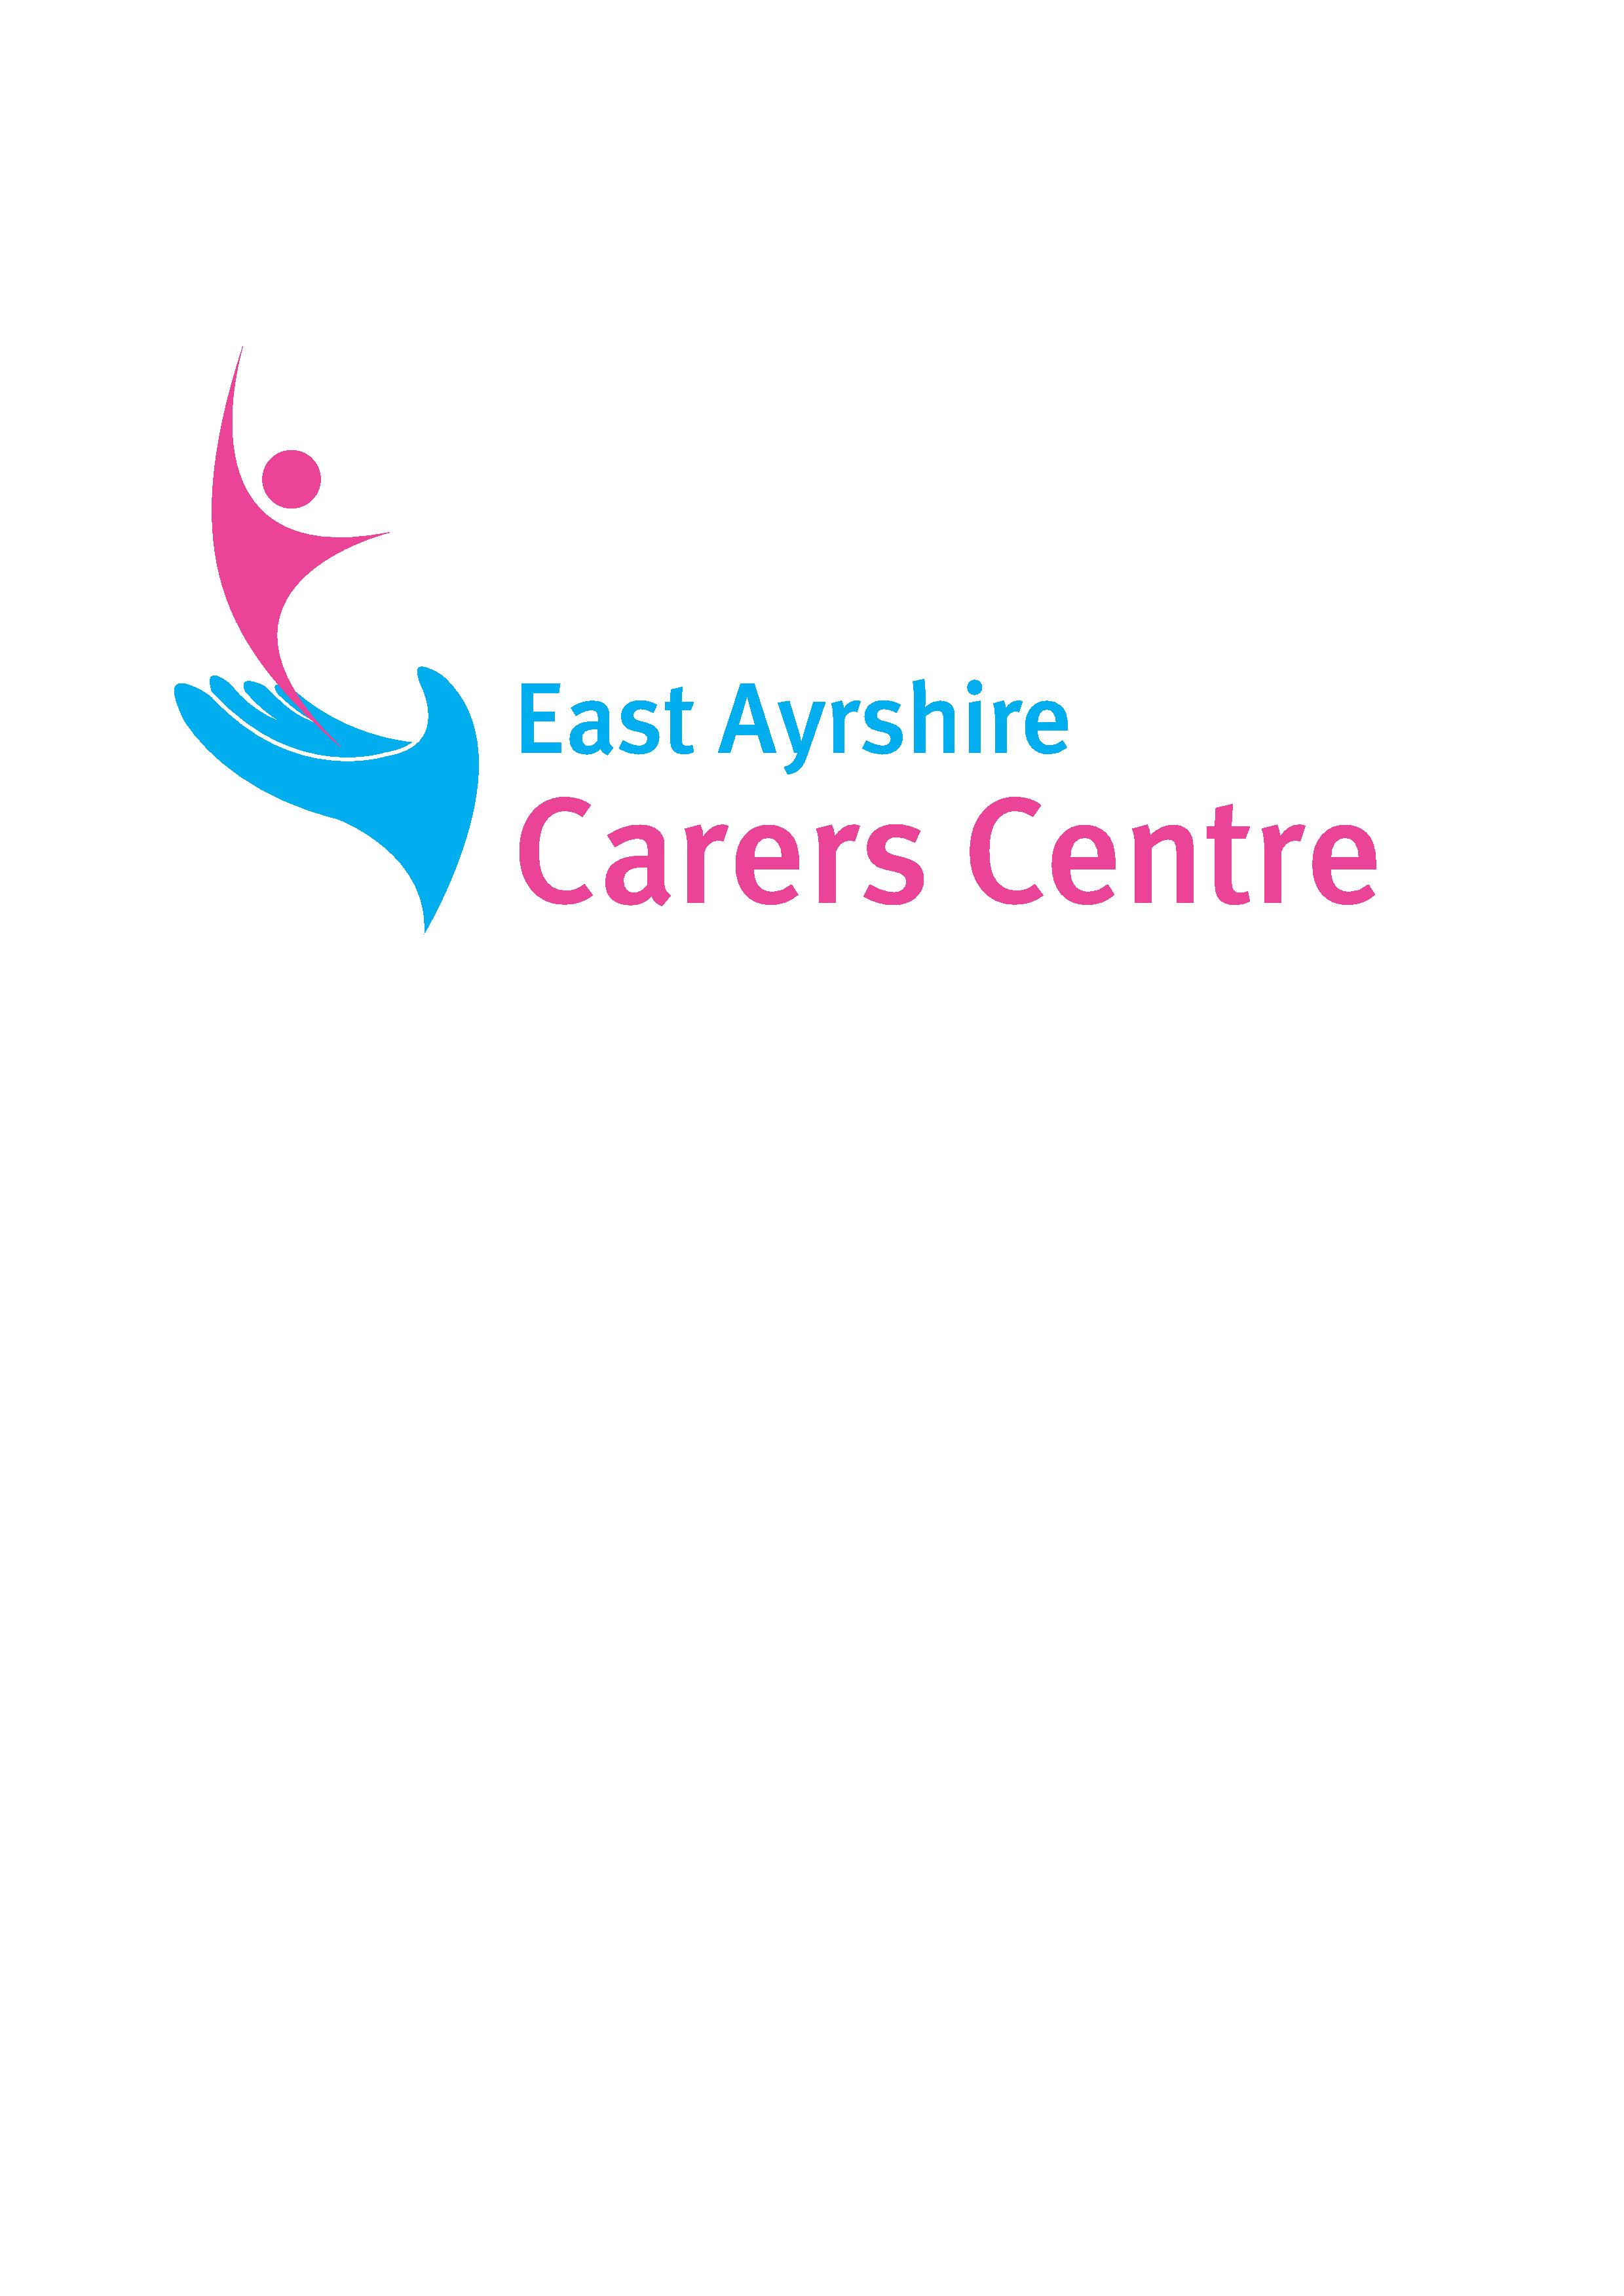 East Ayrshire Carers Centre members logo